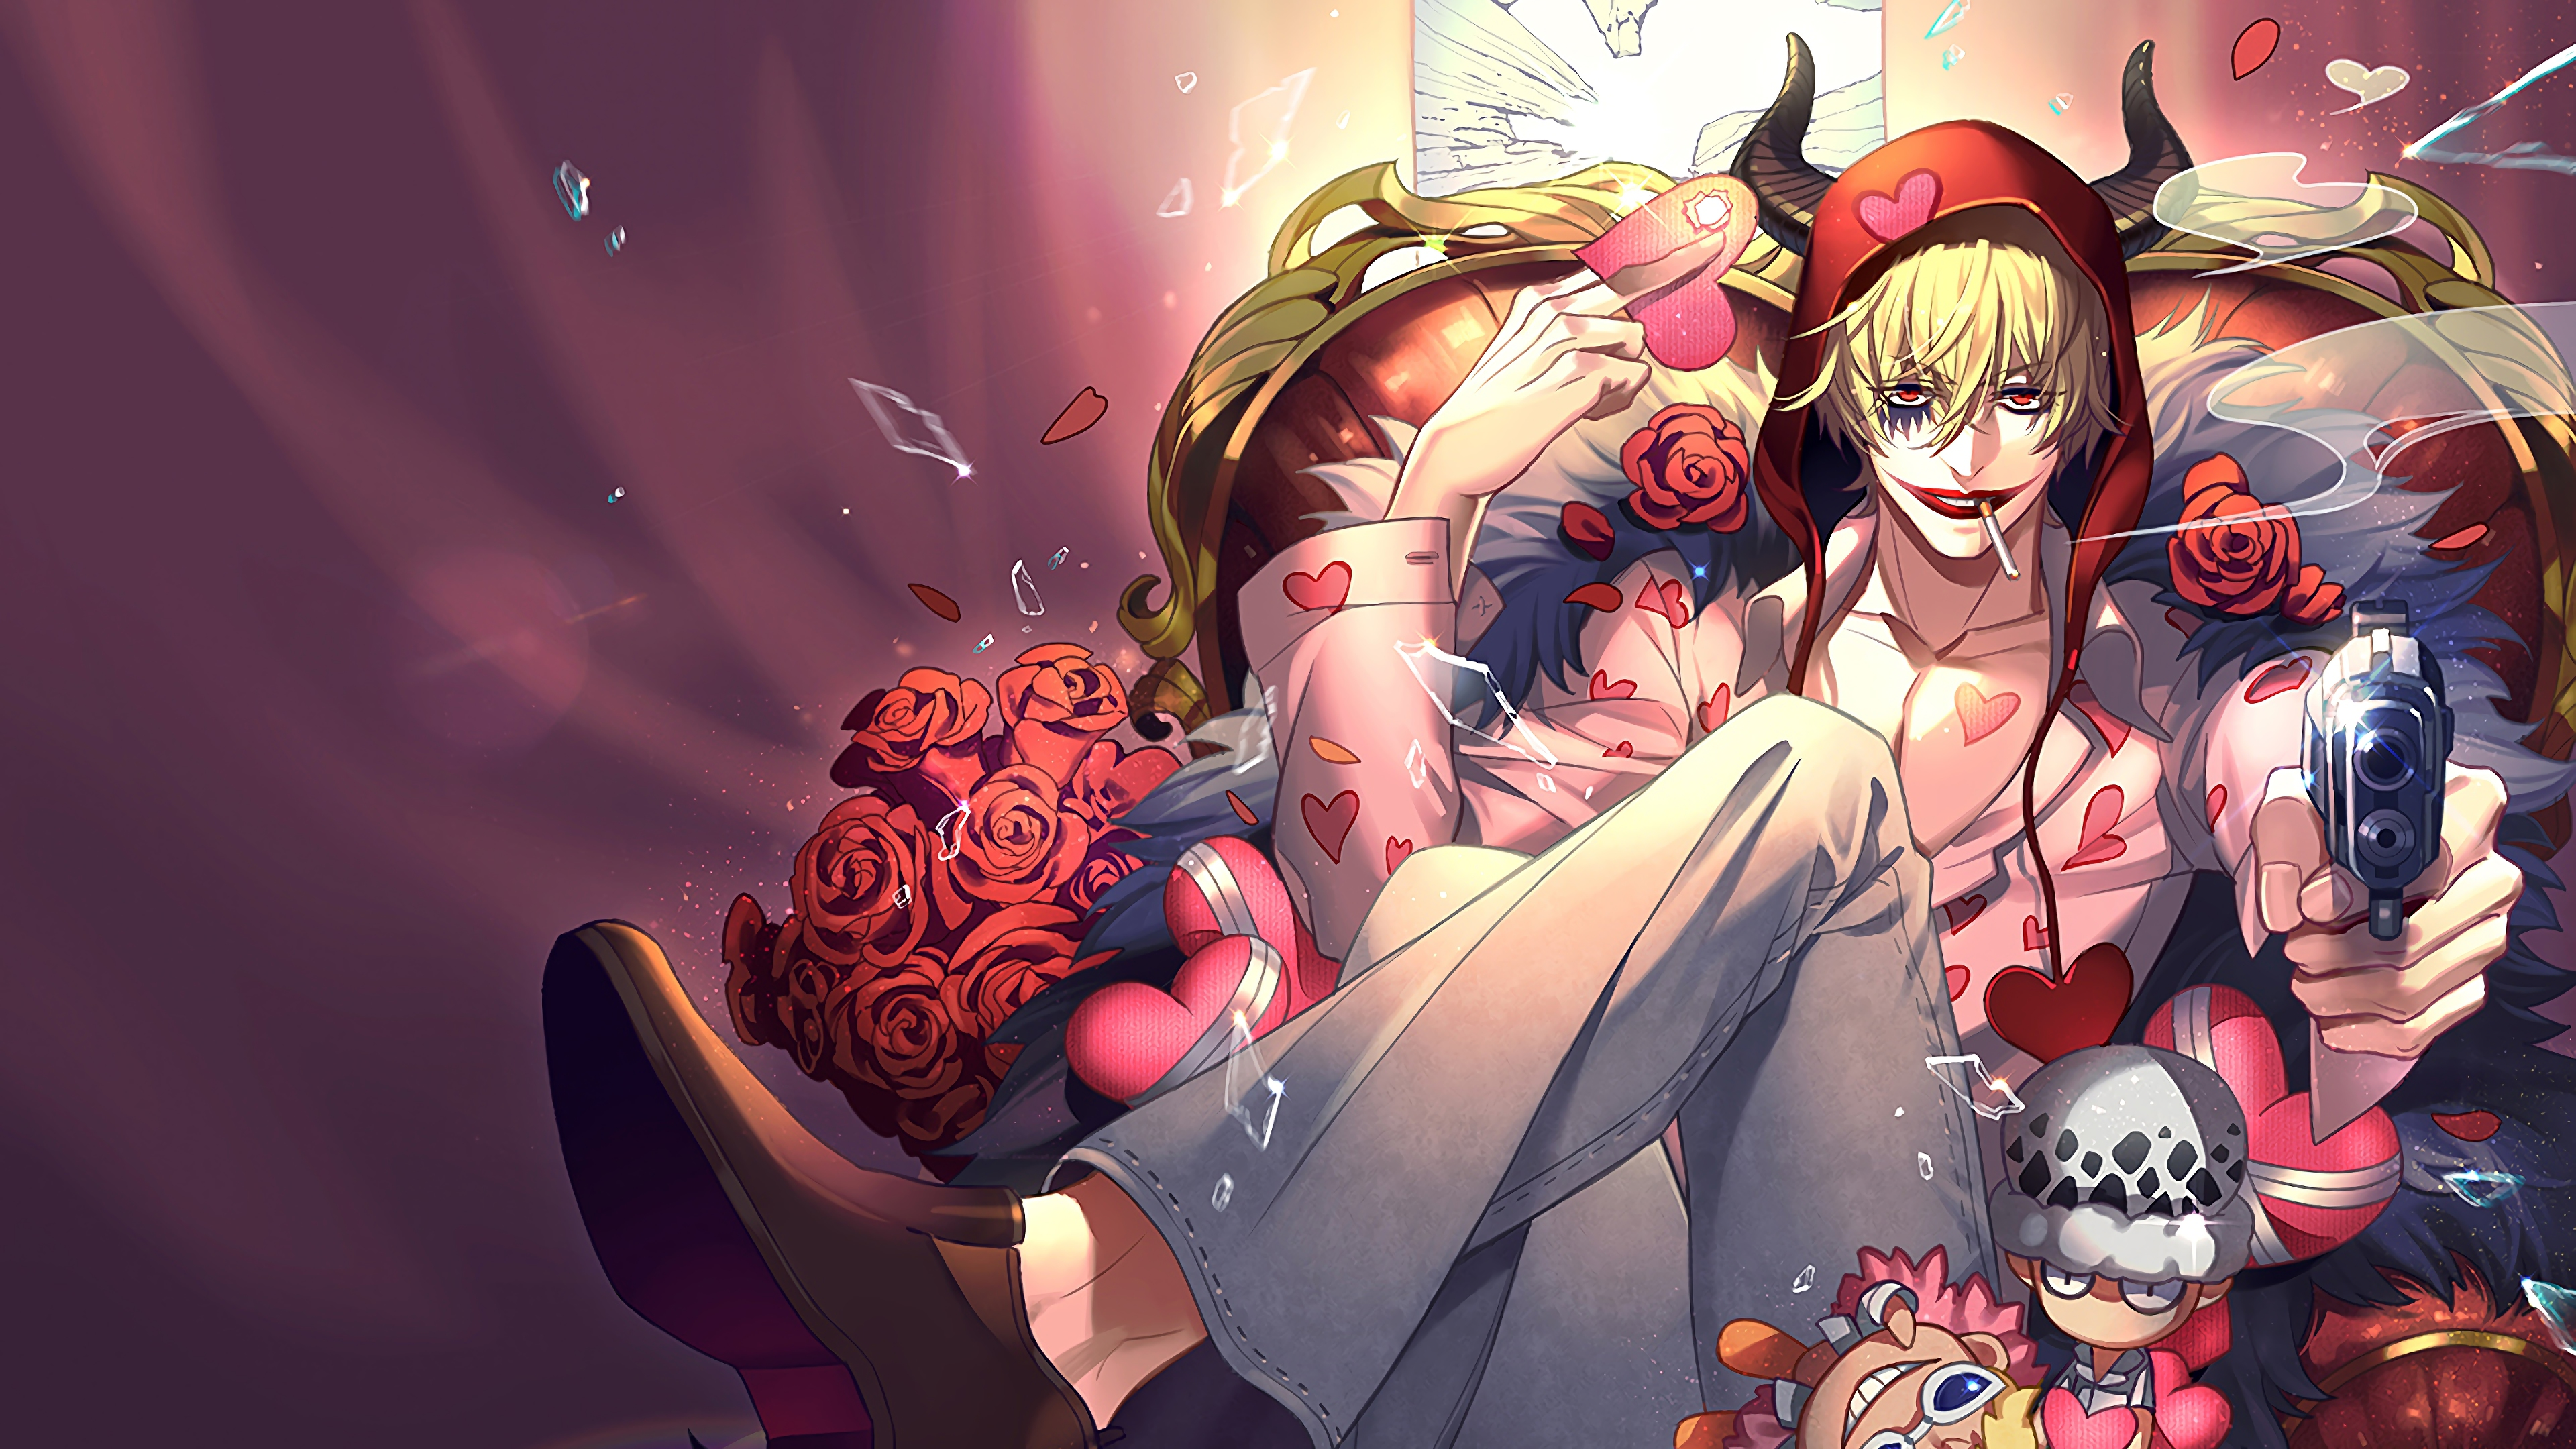 Corazon One Piece Wallpaper Hd